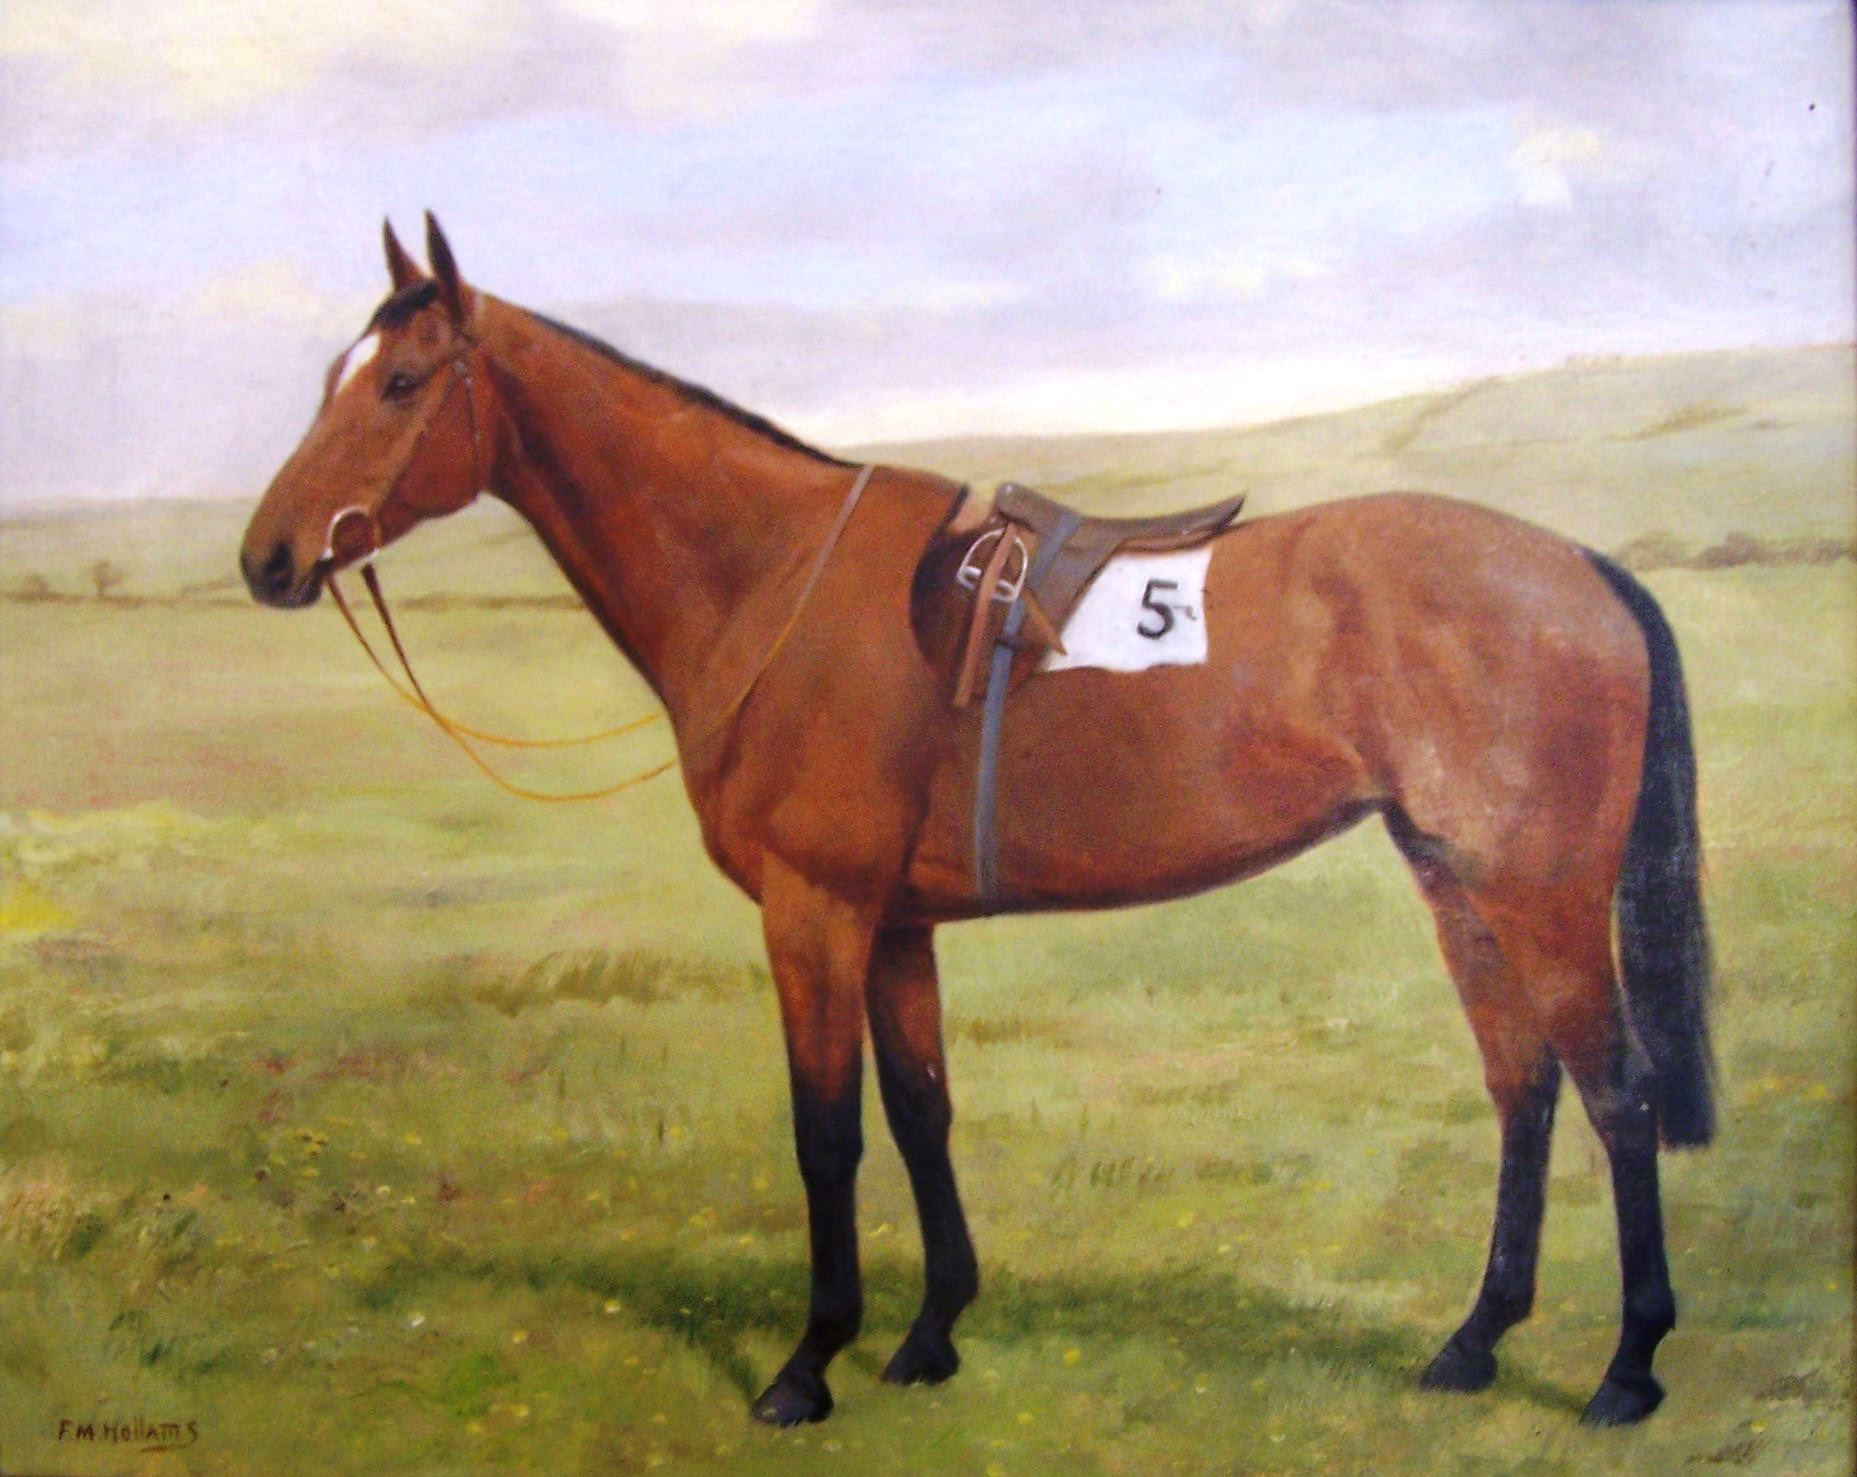 "FLORENCE MABEL HOLLAMS (1877-1967); study of a racehorse in a field, the saddlecloth marked 5, oil on board, signed. 15 1/2"" (39cms) x 19 1/2"" (50cms). ARR"